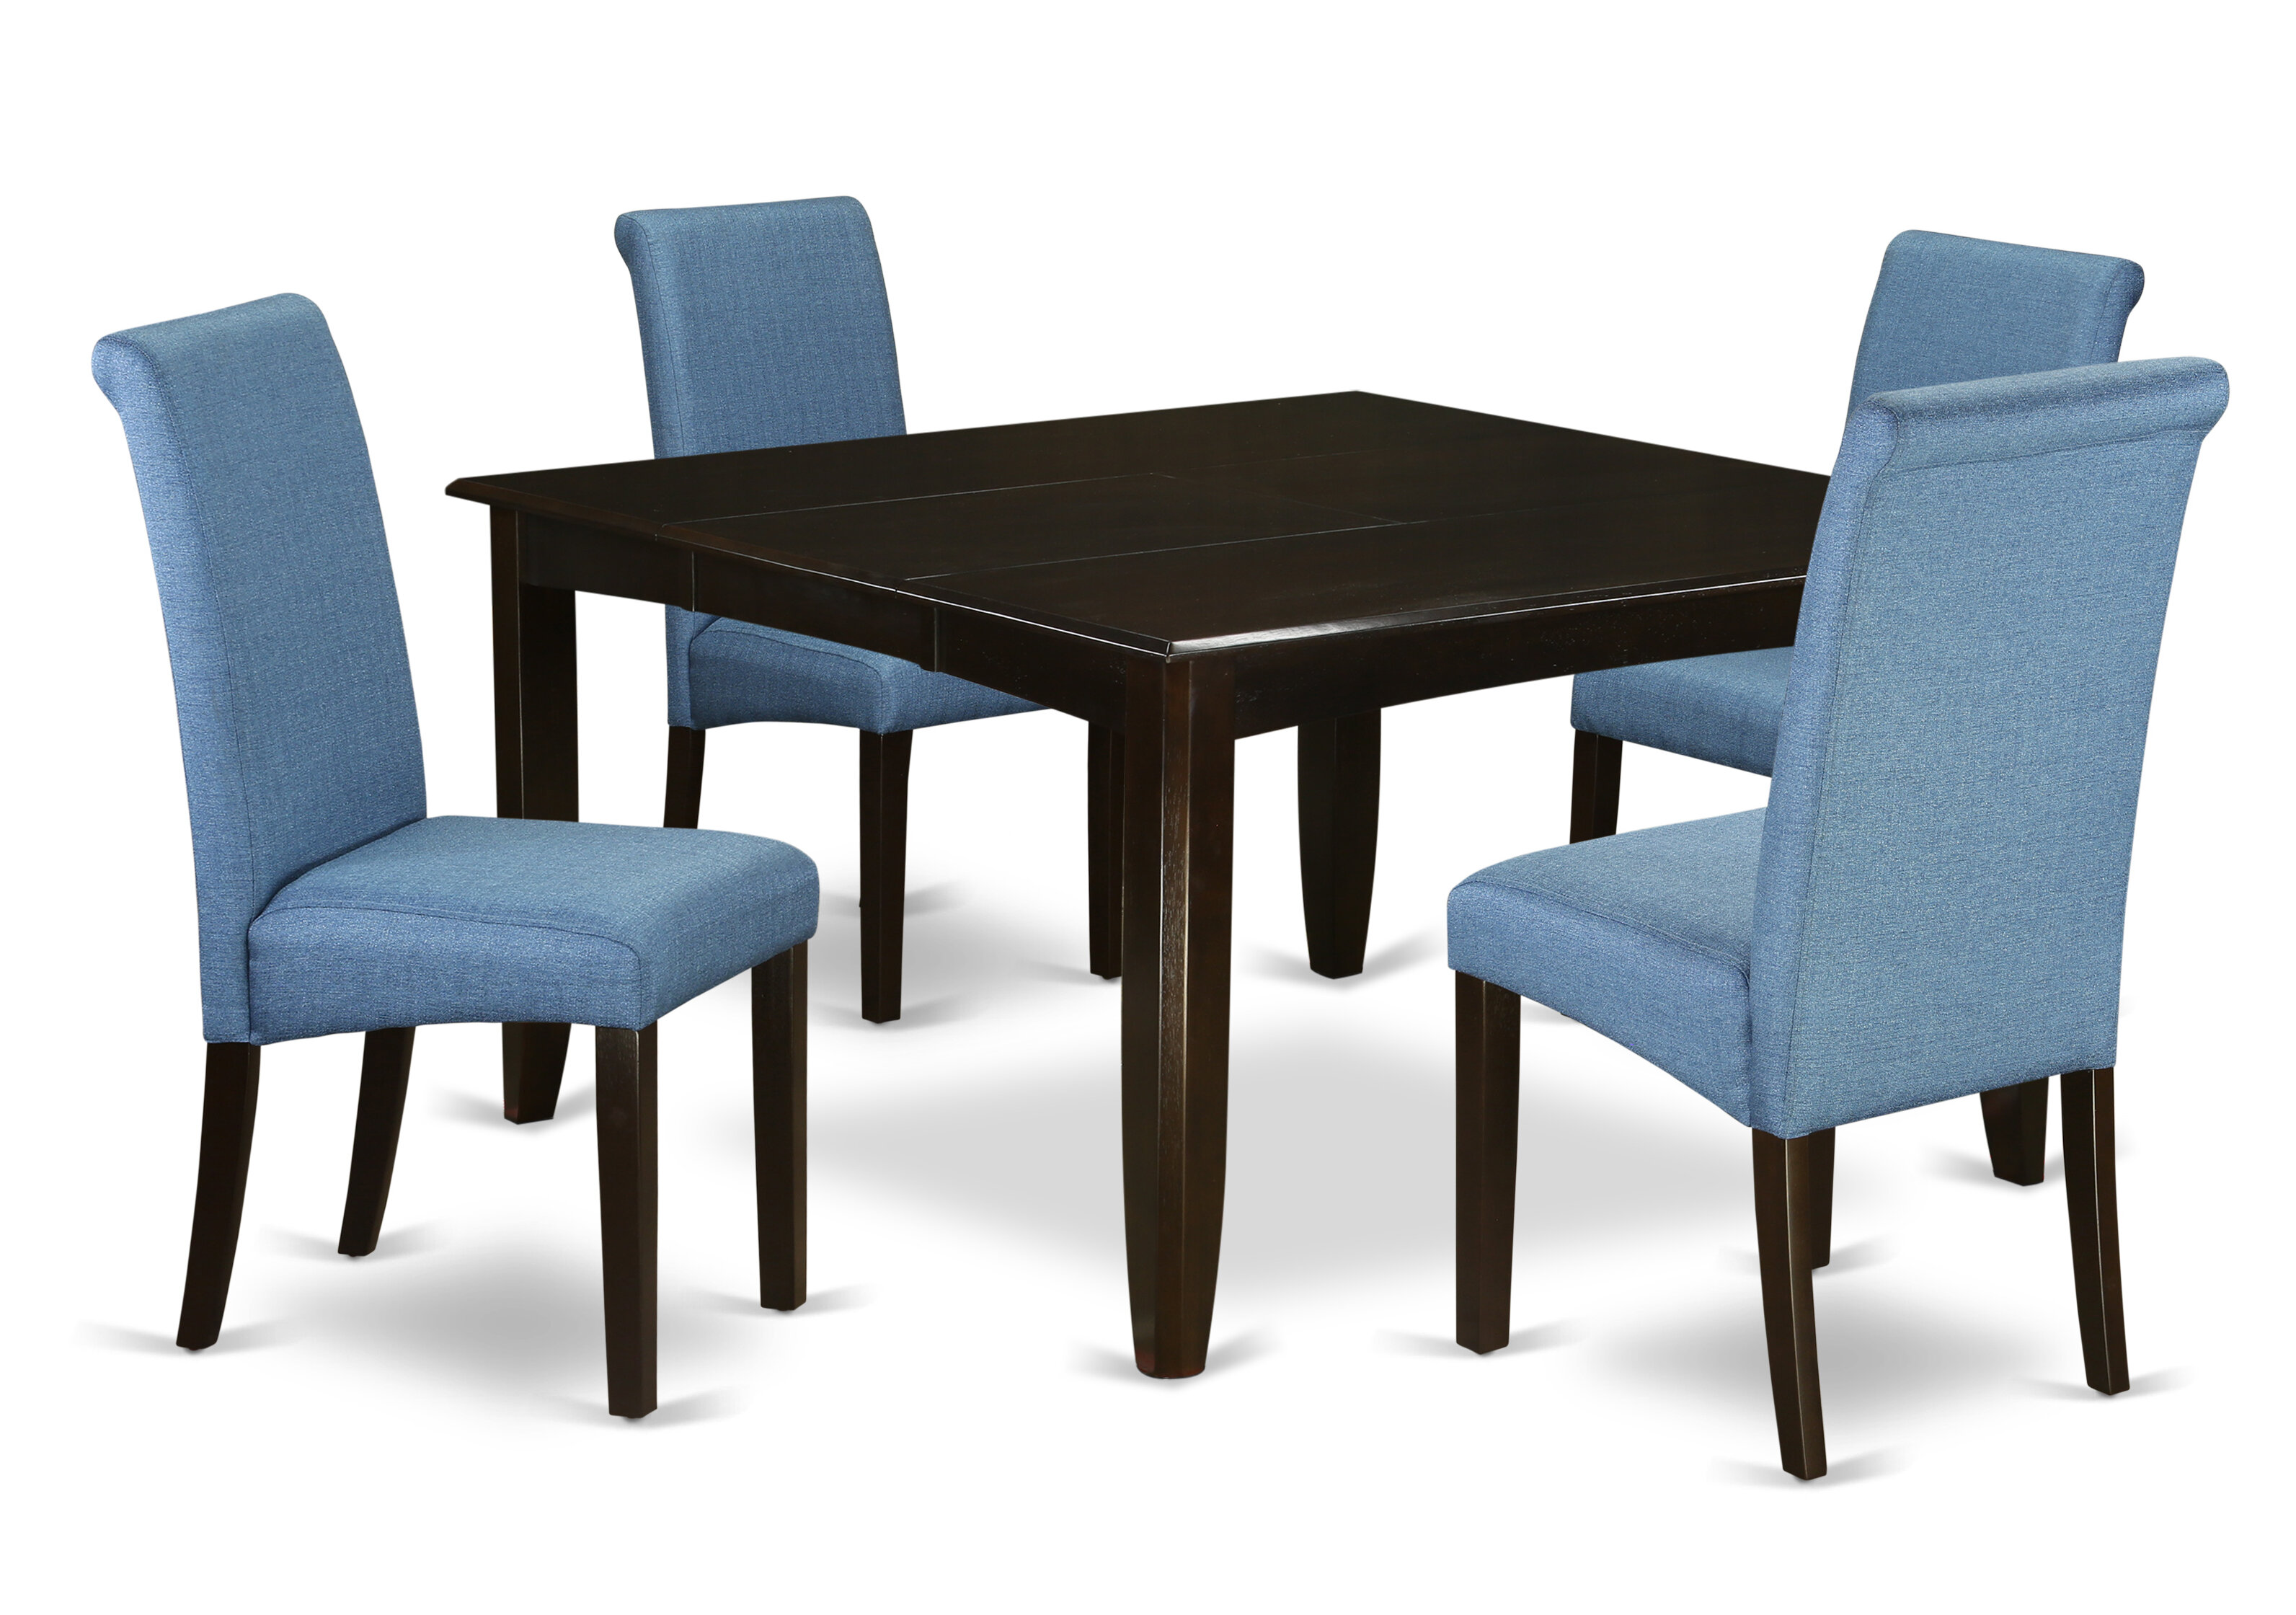 Peachy Lexie Square Kitchen Table 5 Piece Extendable Solid Wood Dining Set Beutiful Home Inspiration Xortanetmahrainfo